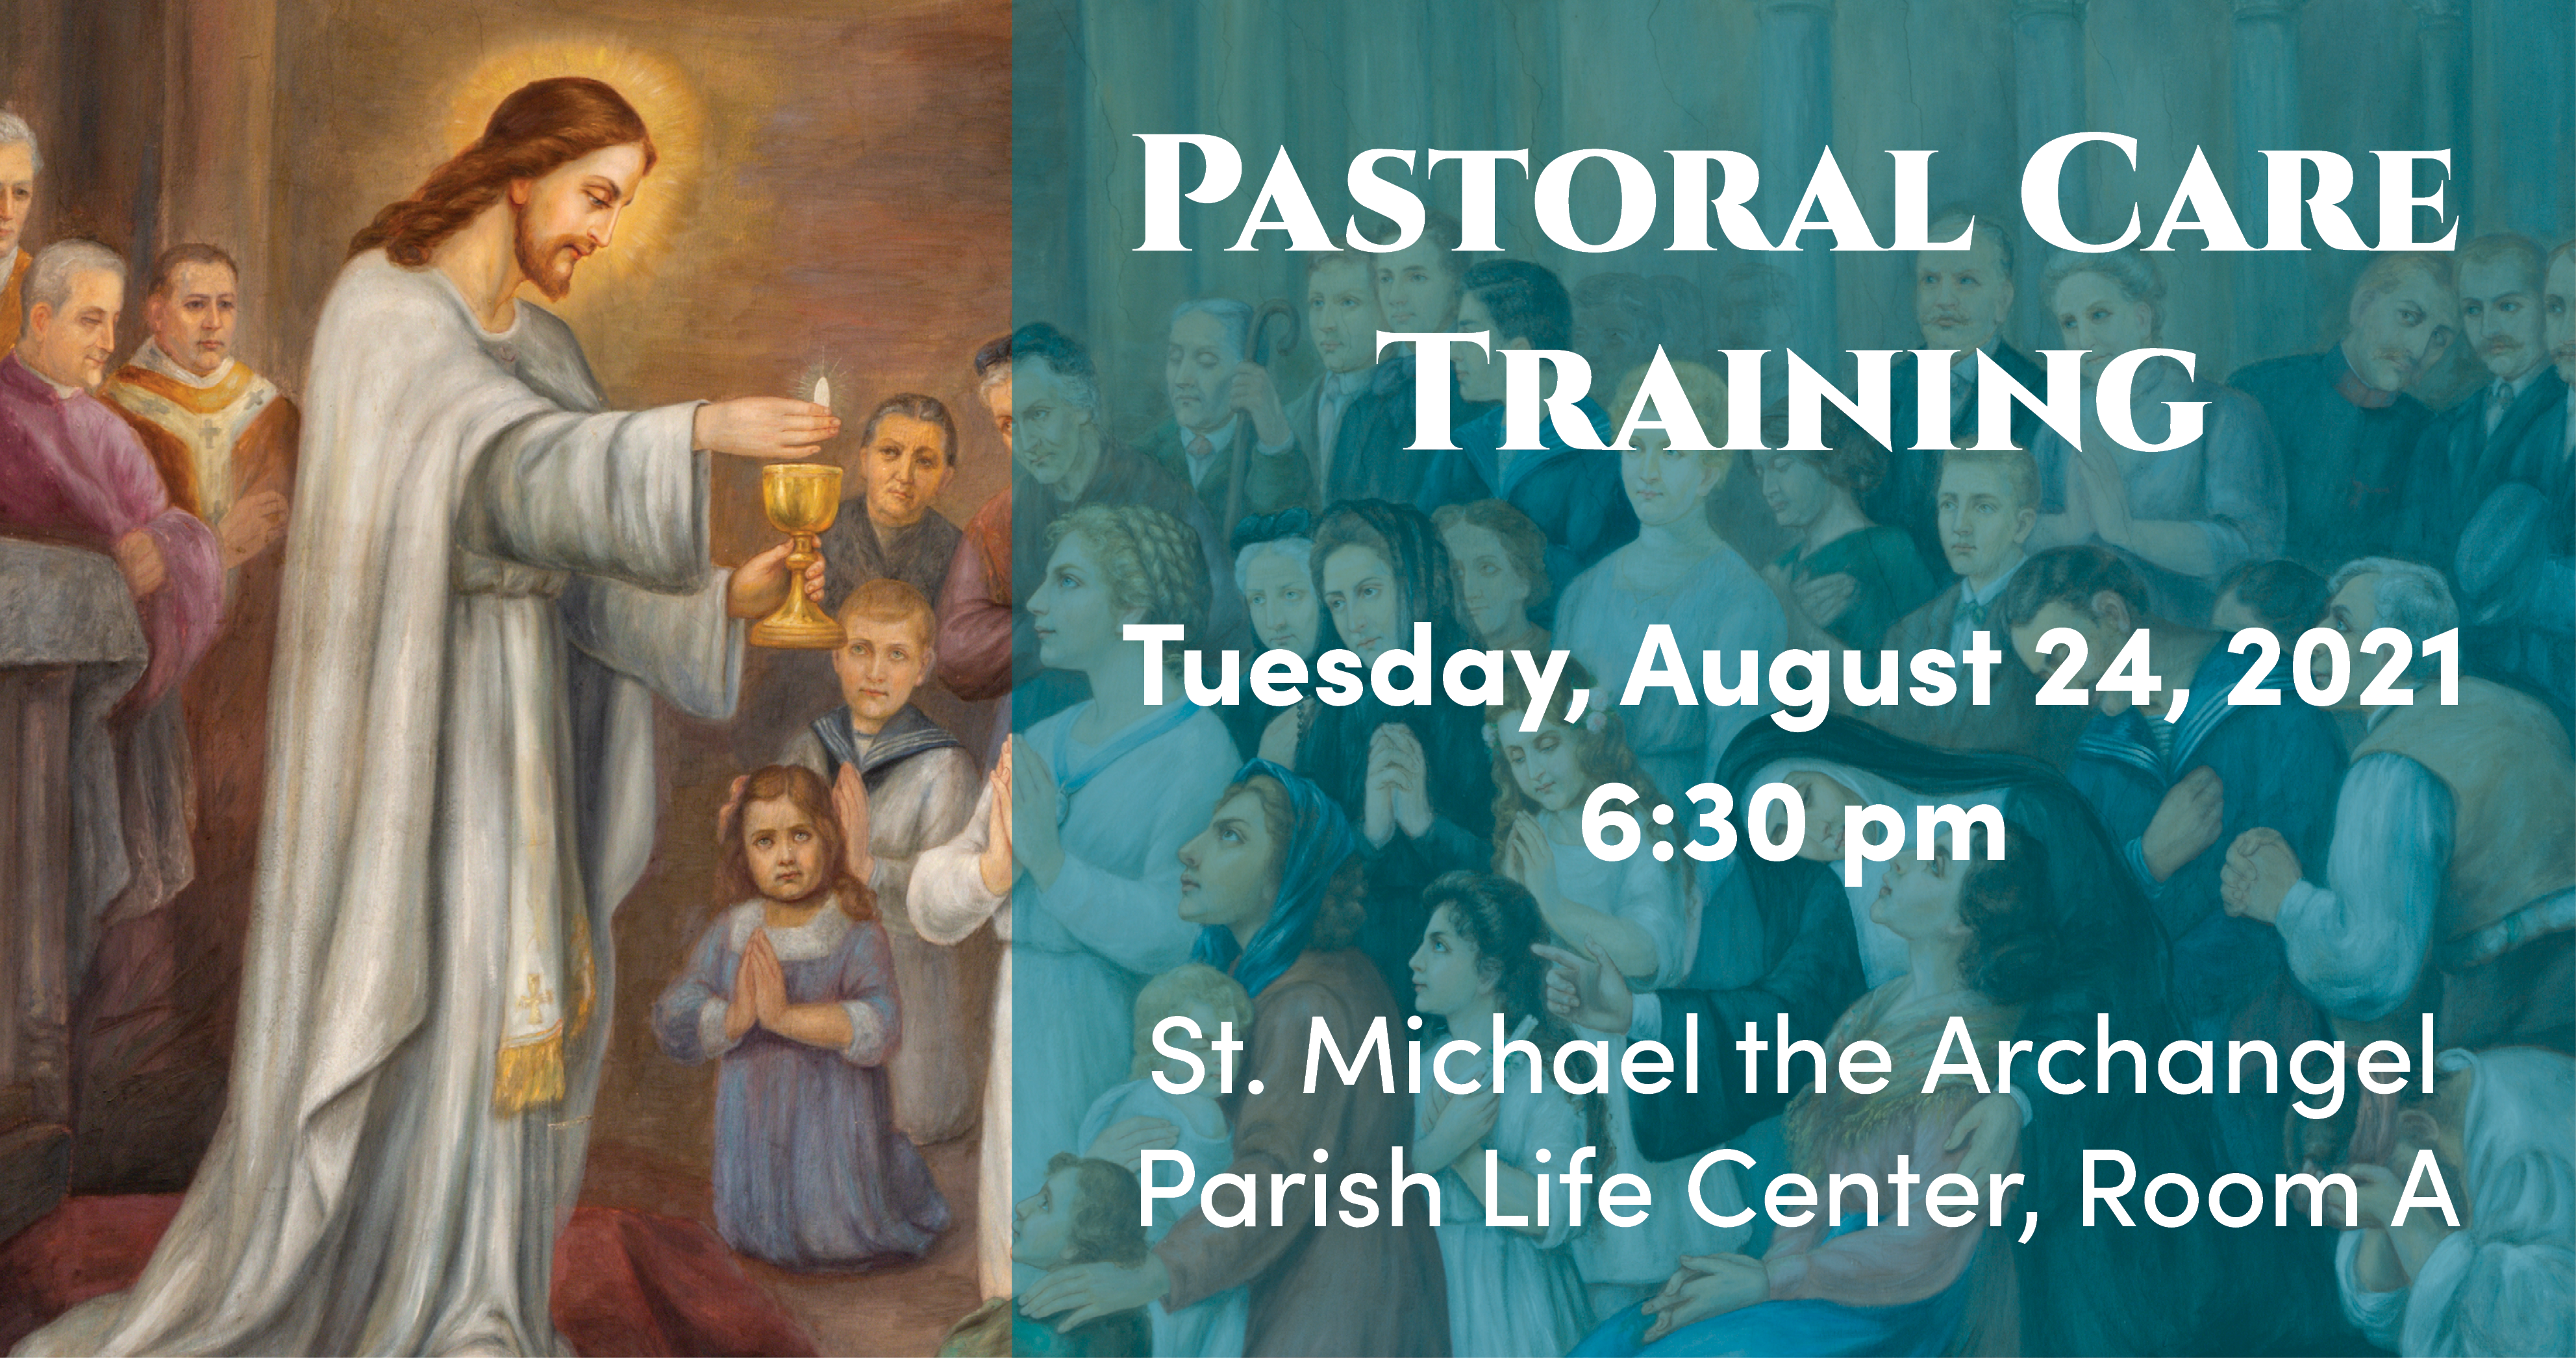 Pastoral Care Training Tuesday, August 24, 2021 6:30 pm in PLC-A